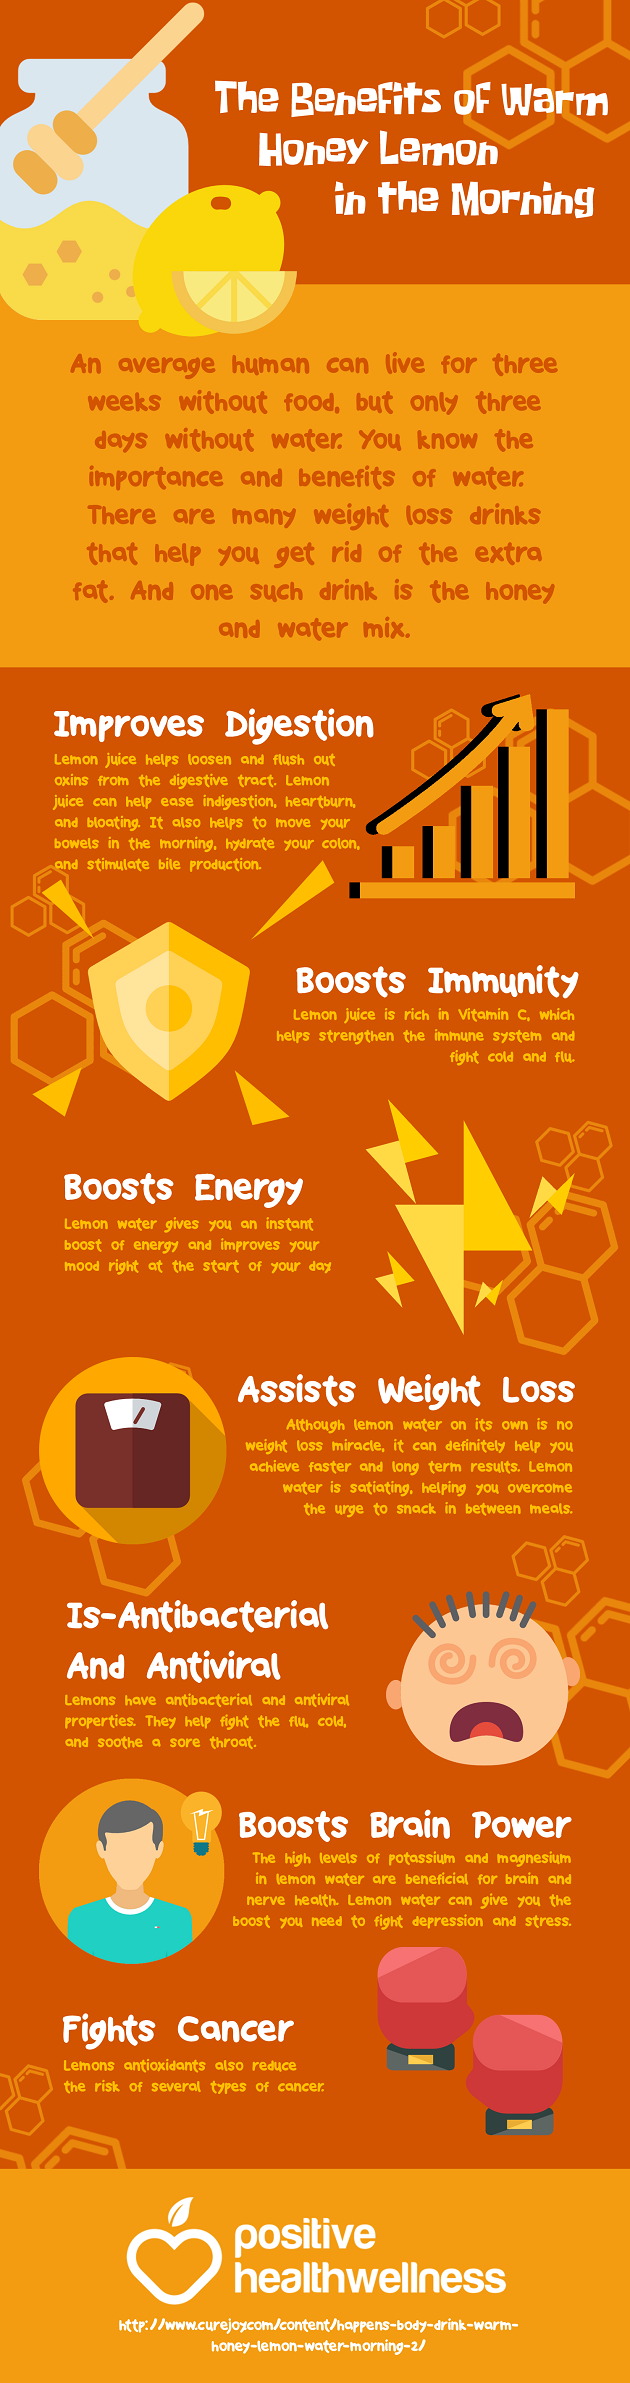 The-Benefits-of-Warm-Honey-Lemon-in-the-Morning Infographic